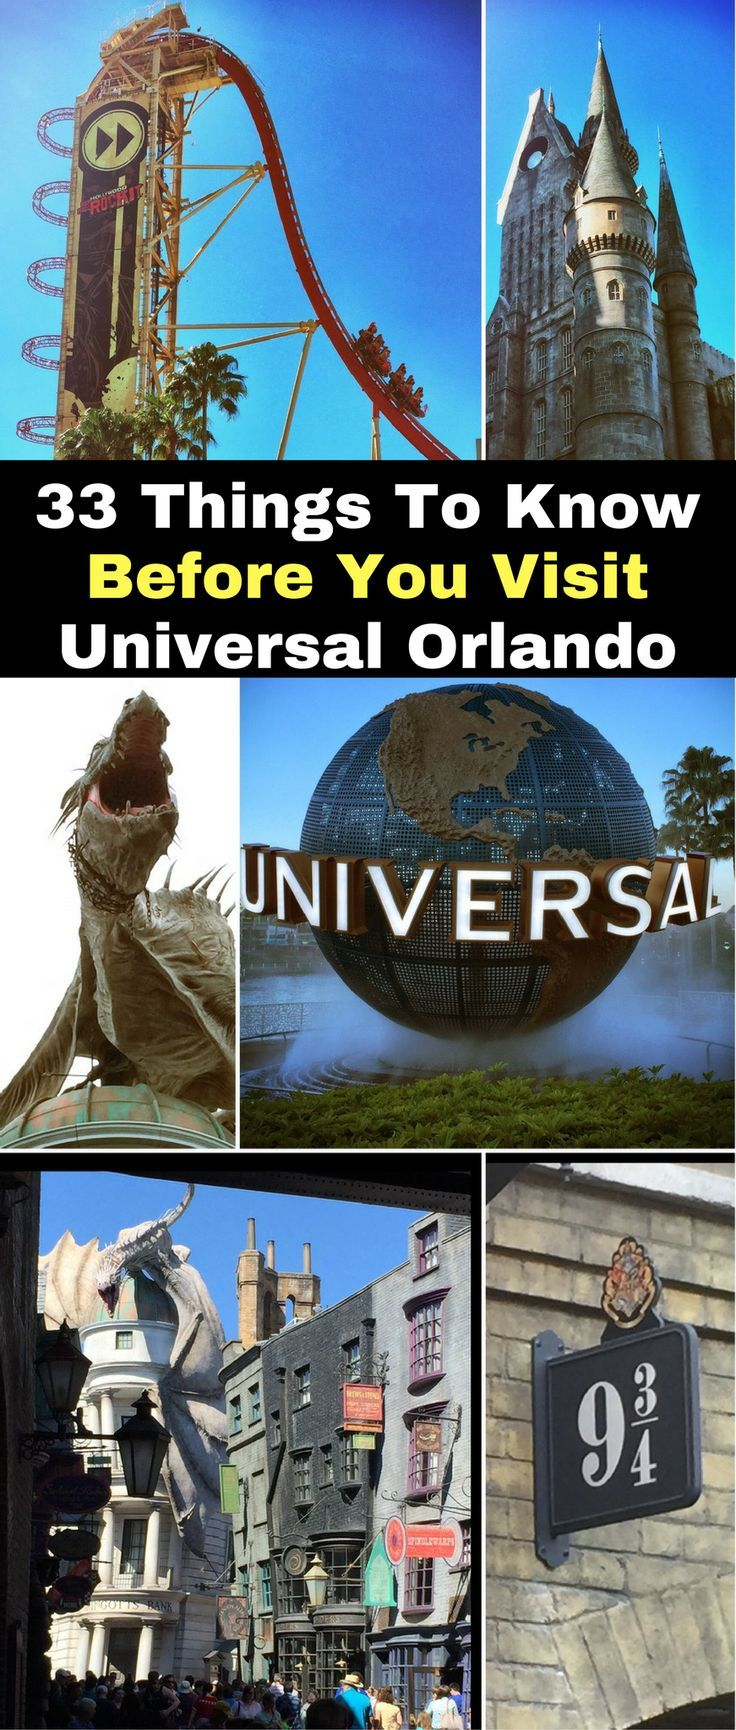 Before you book your trip, read this advice for planning a trip to the Universal Orlando theme parks. Awesome tips, excellent hacks for Harry Potter world.